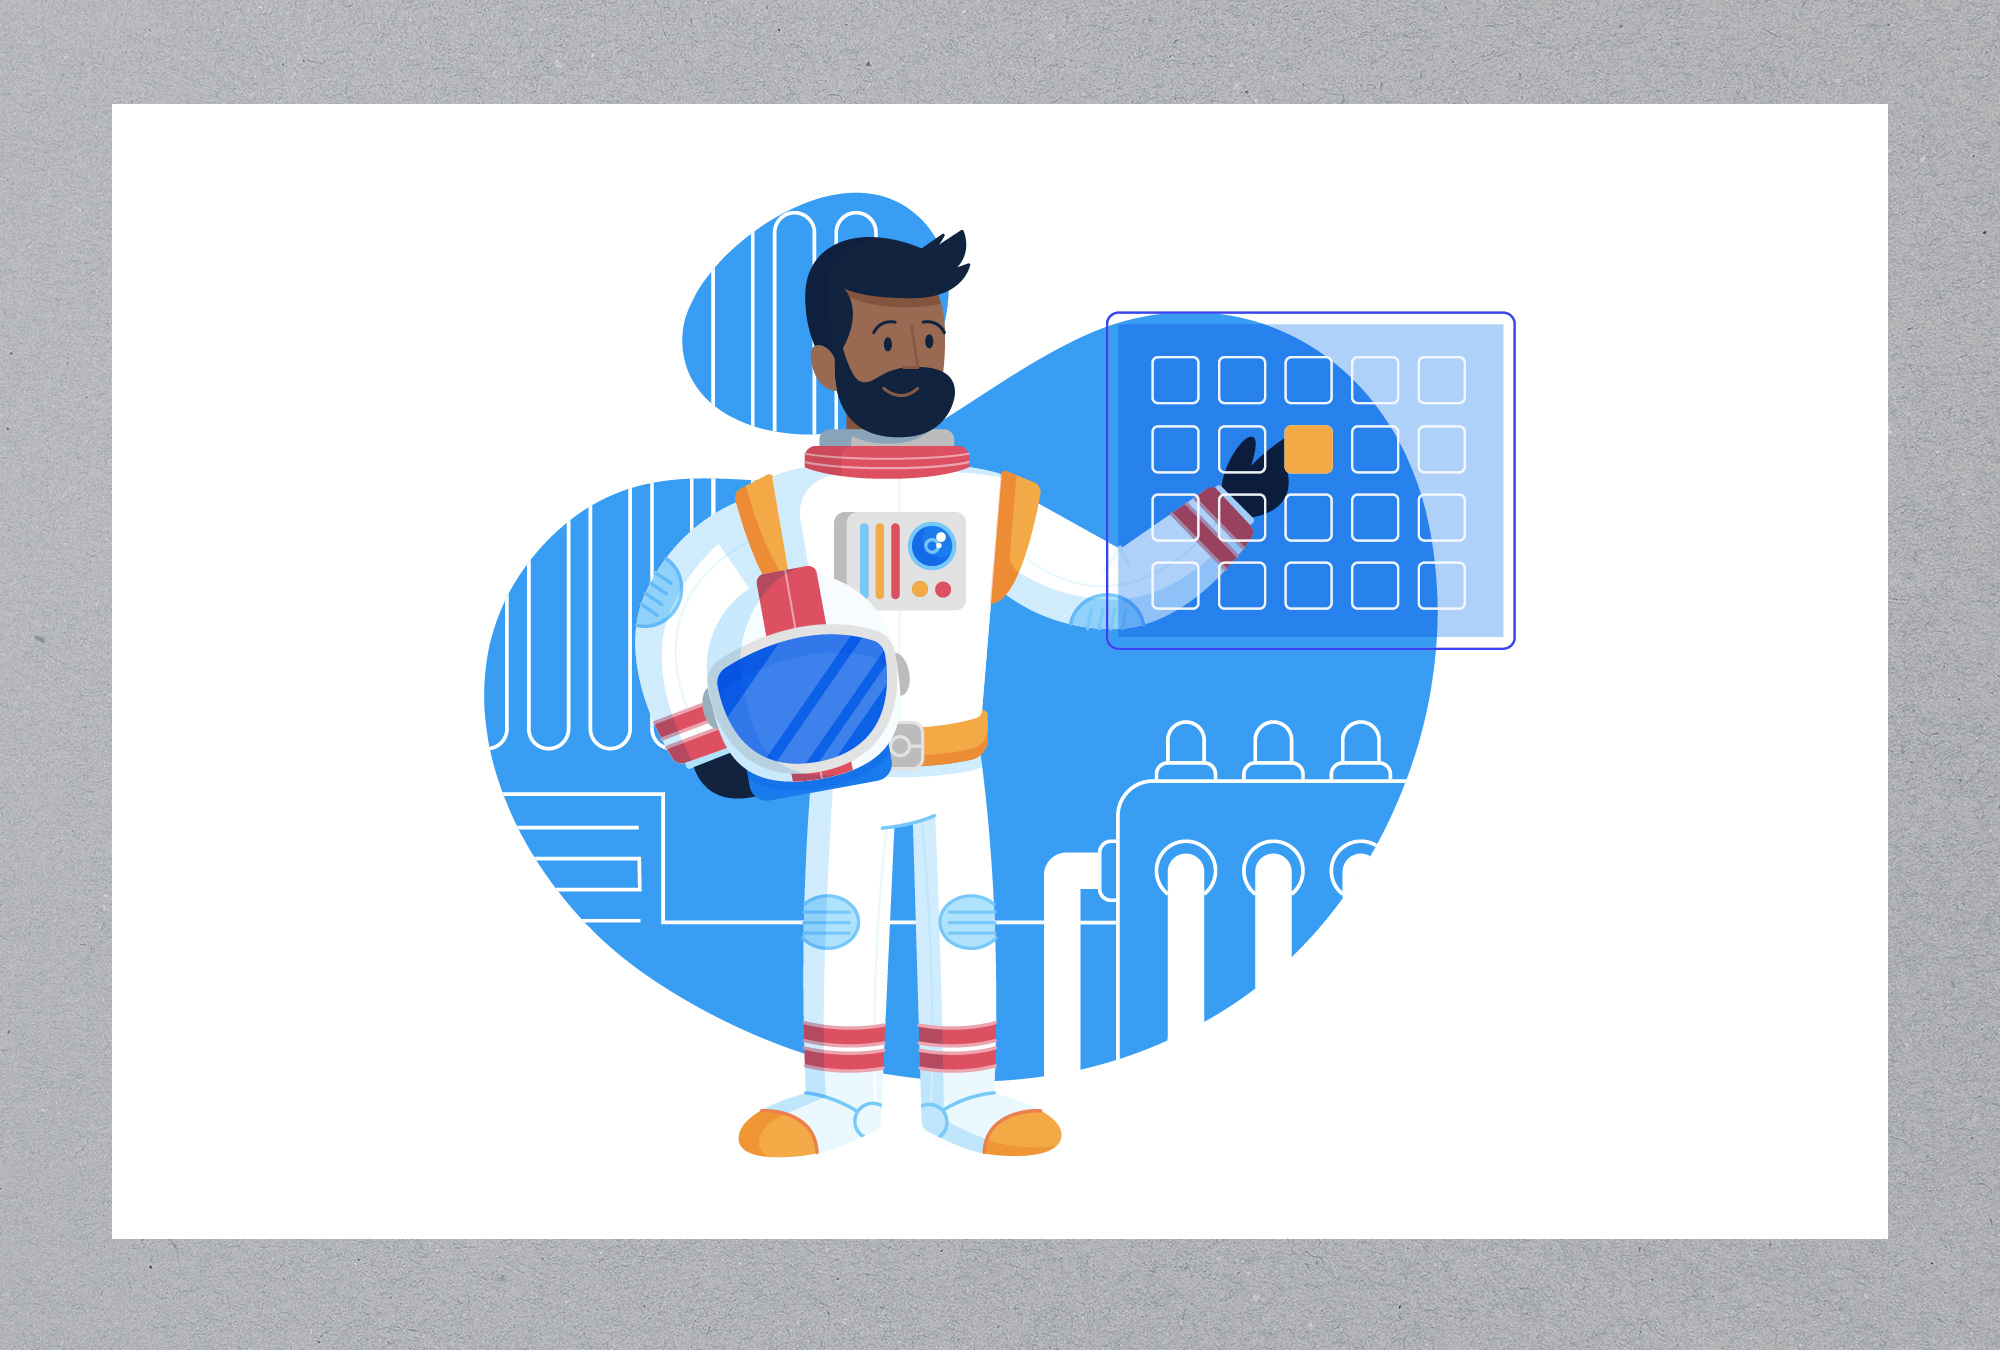 scoreshuttle-illustration-01